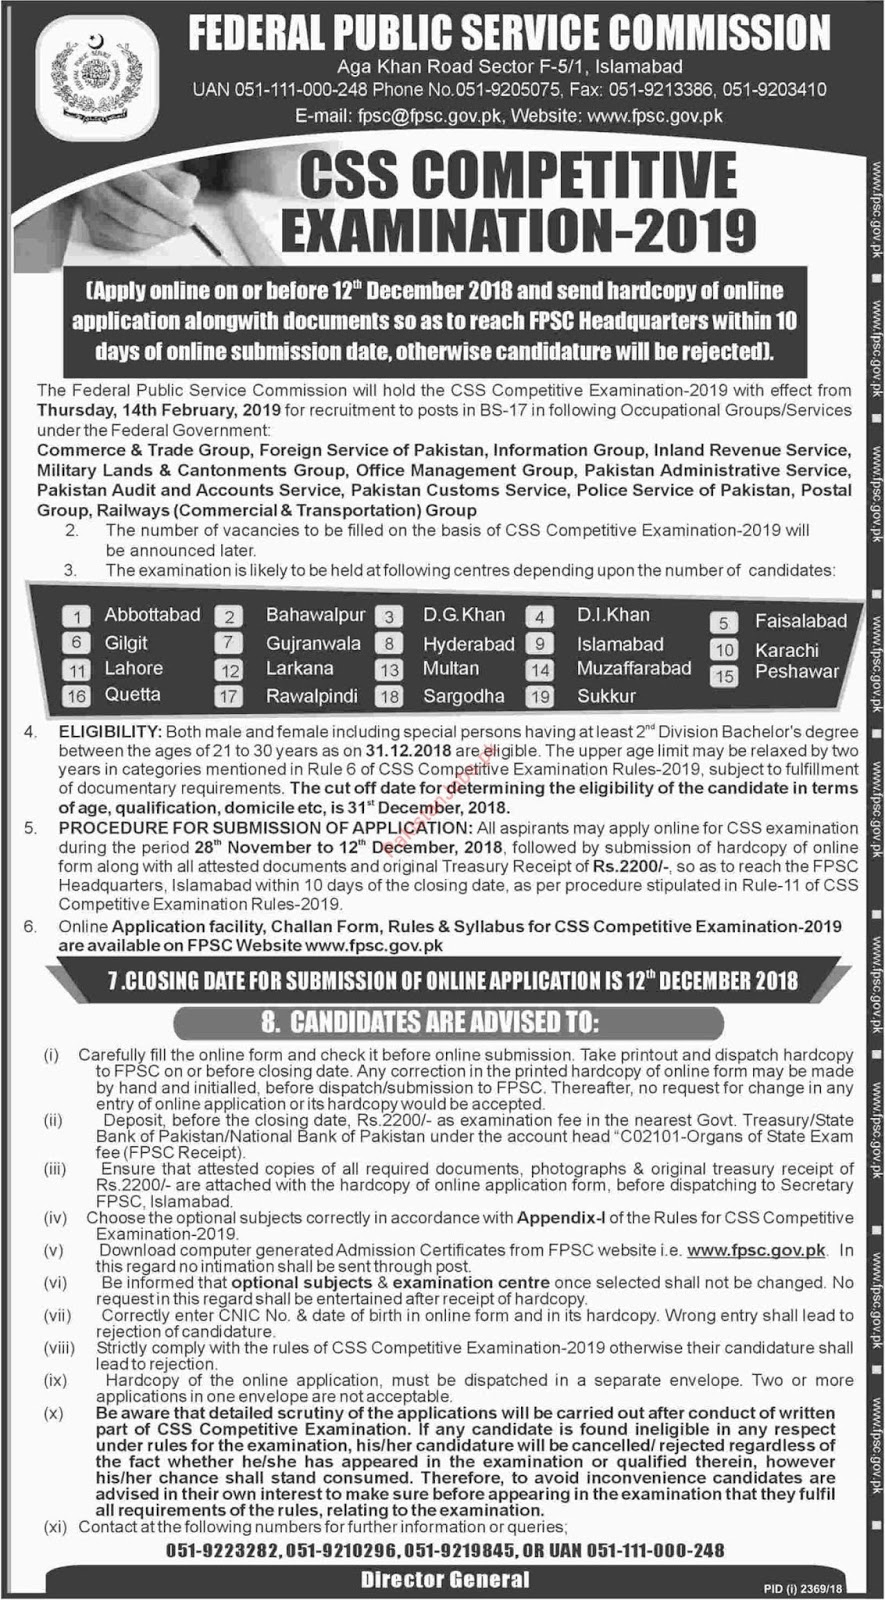 CSS Competitive Examination Newspaper Image